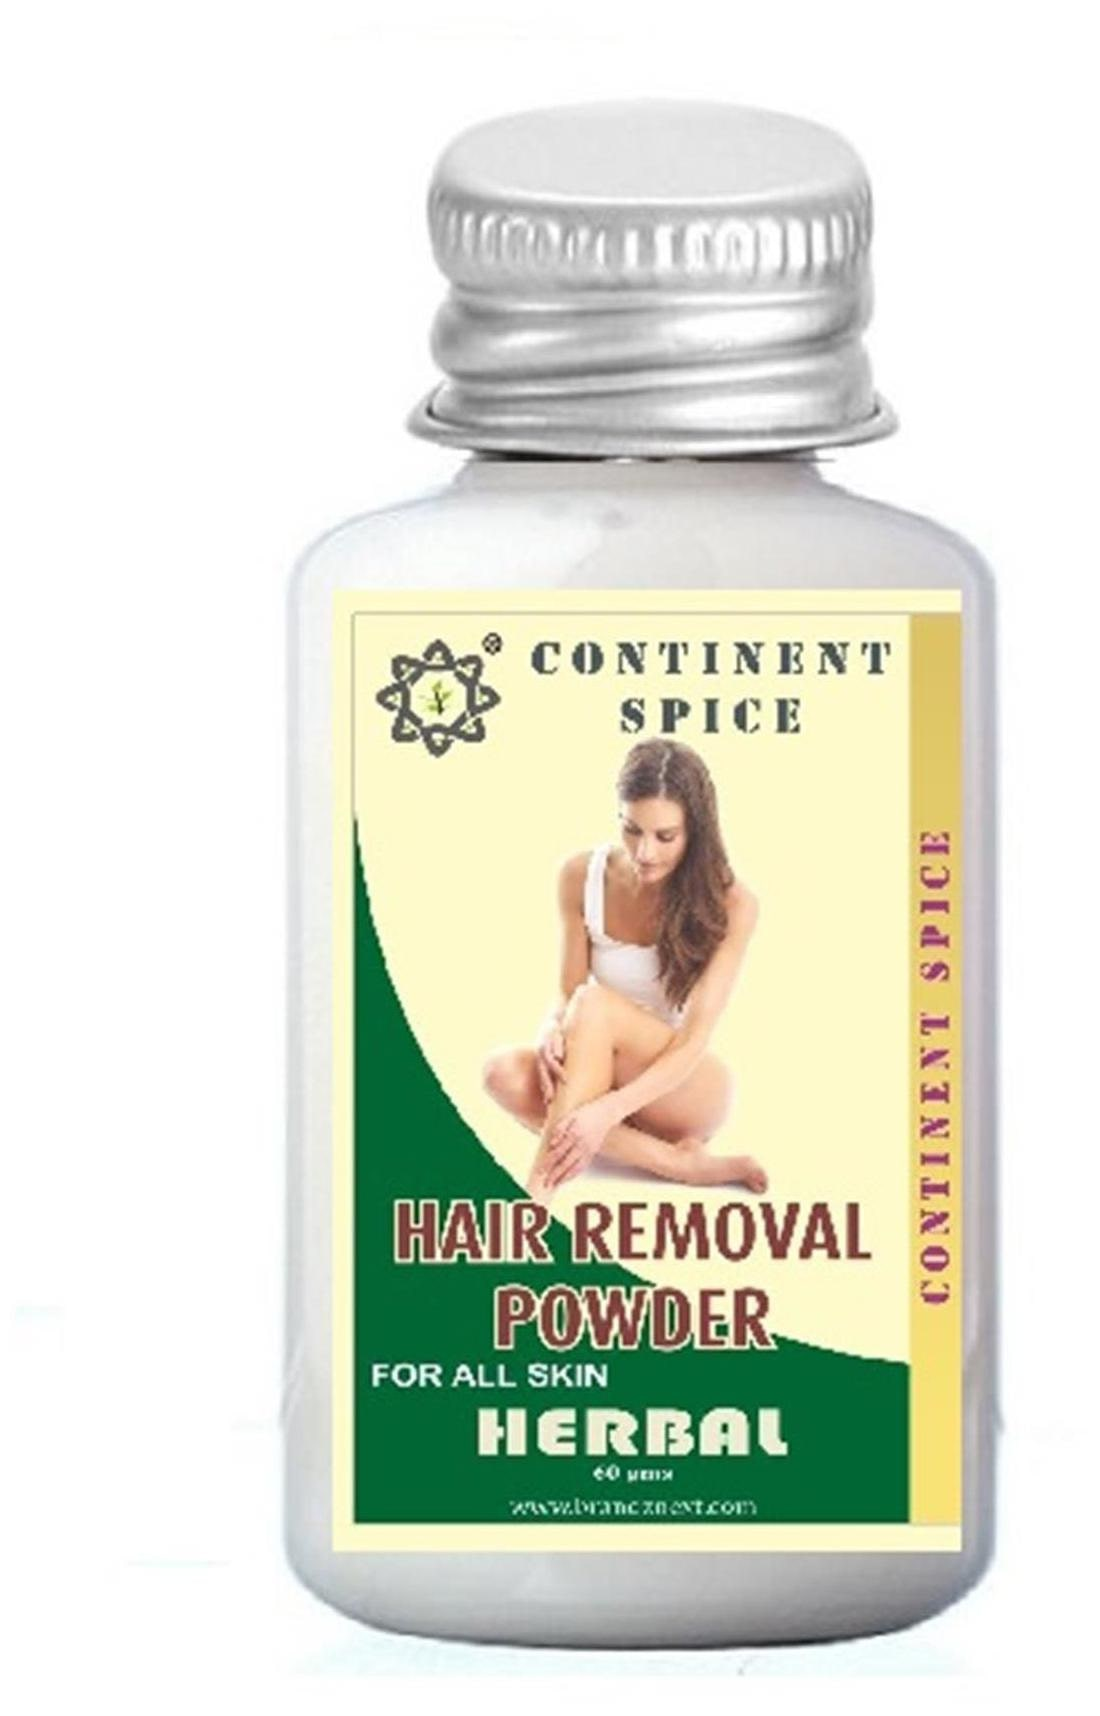 Buy Continent Spice Herbal Hair Removal Powder 60 Gm S Online At Low Prices In India Paytmmall Com